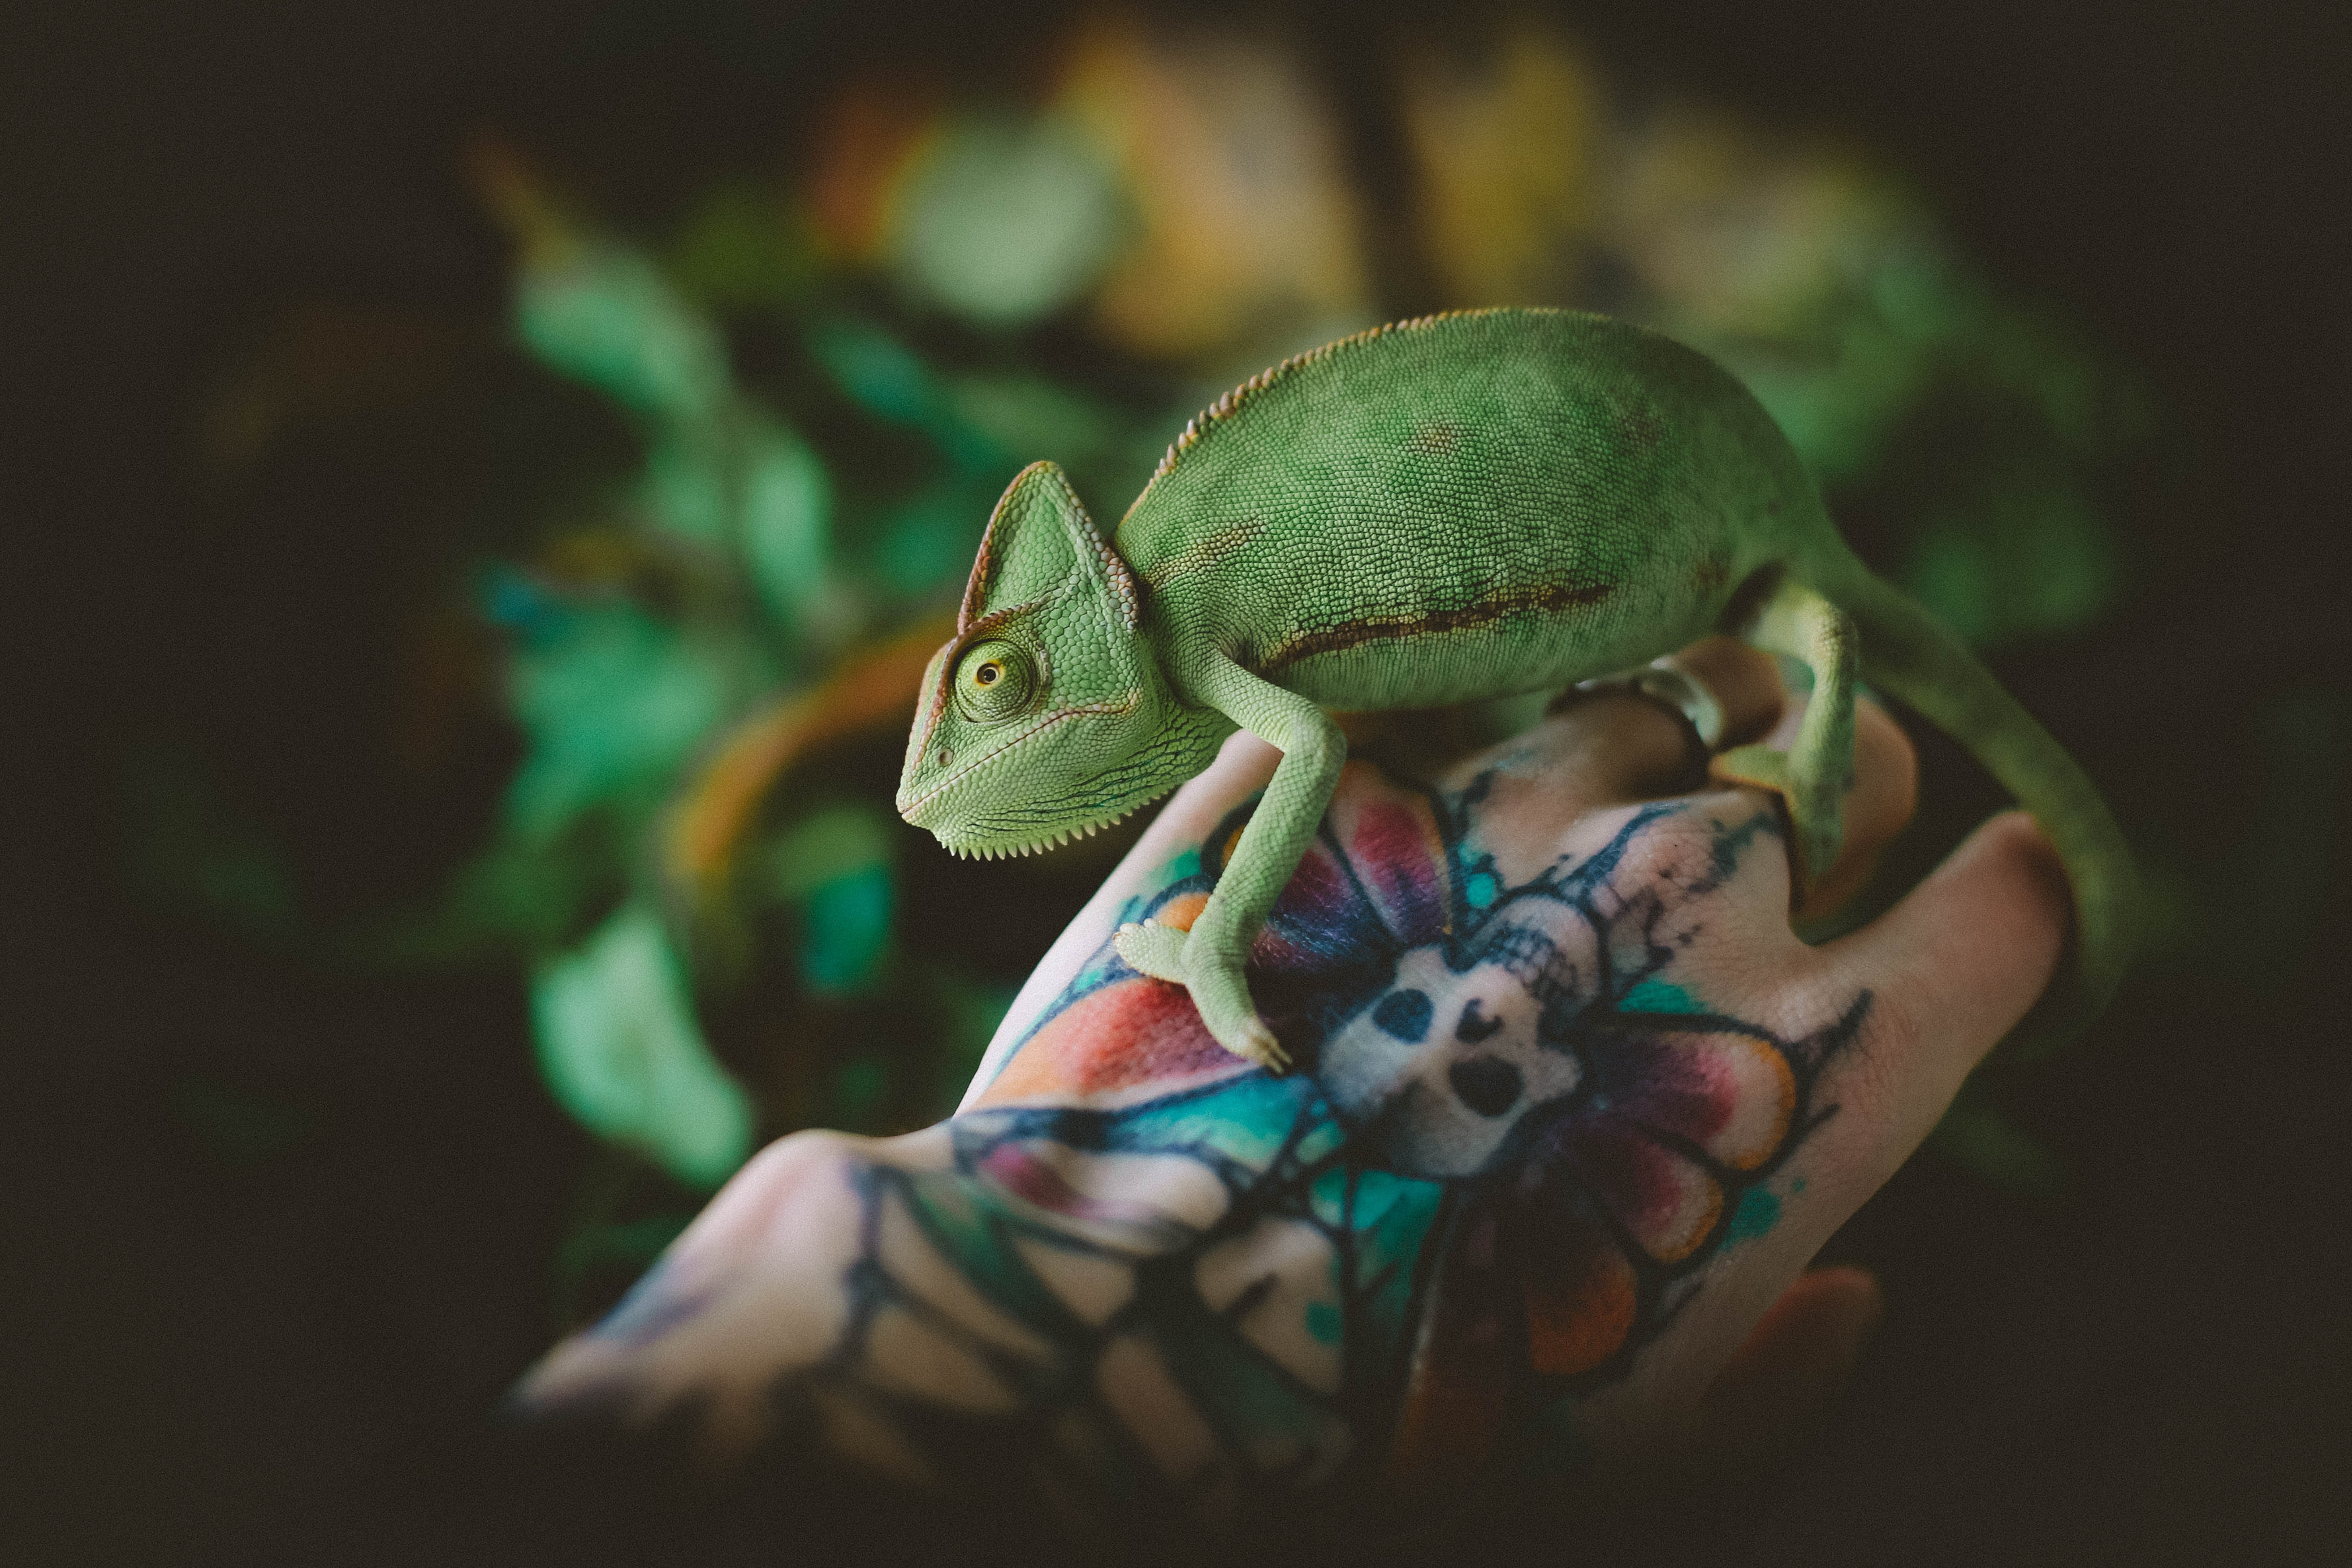 127239 download wallpaper Animals, Hand, Tattoo, Lizard, Reptile, Chameleon screensavers and pictures for free